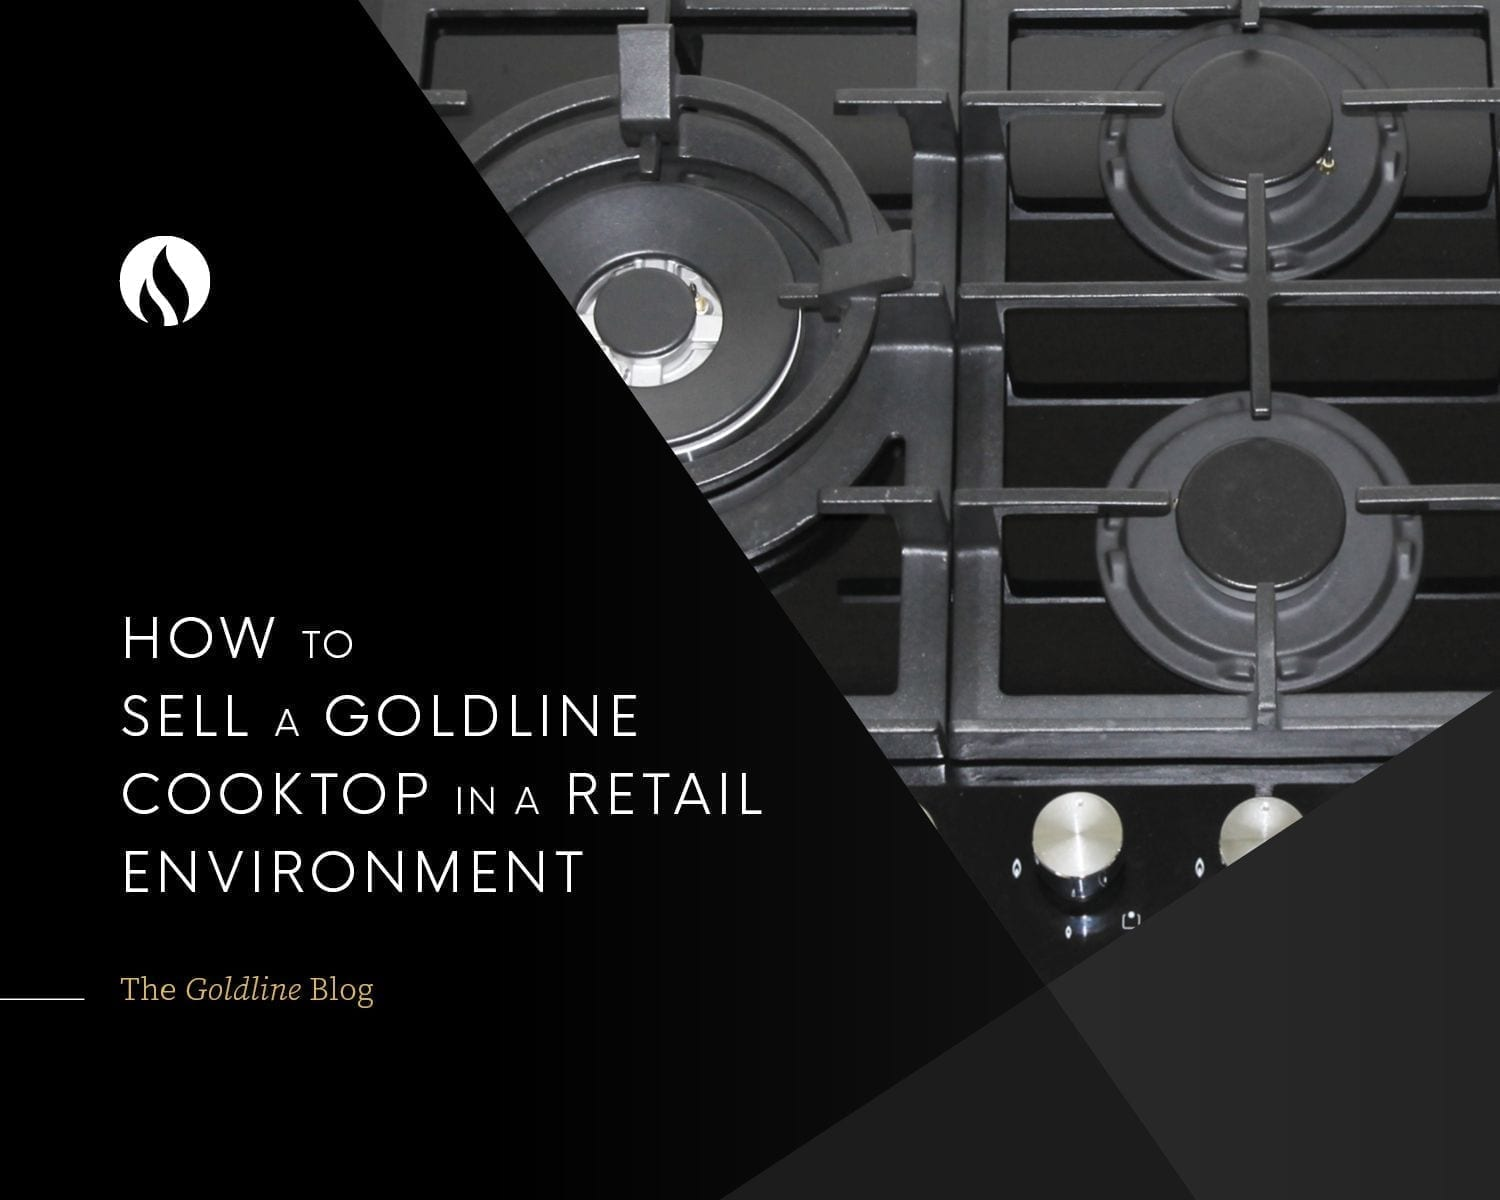 How to sell Goldline Cook tops